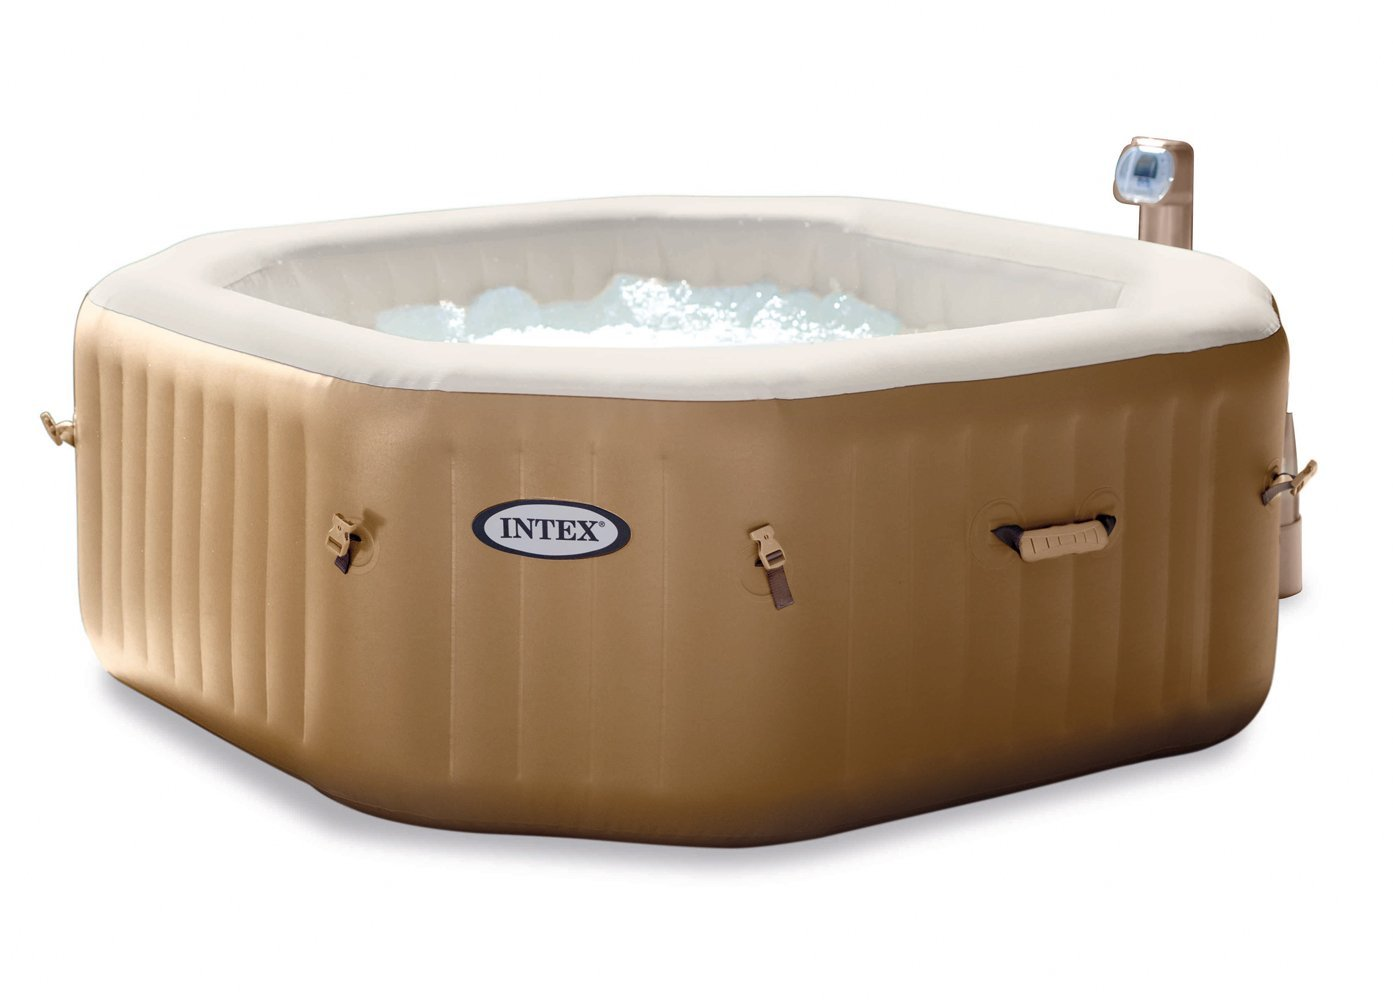 Intex octagonal bubble spa inflatable hot tub reviewed for Aspirateur spa intex